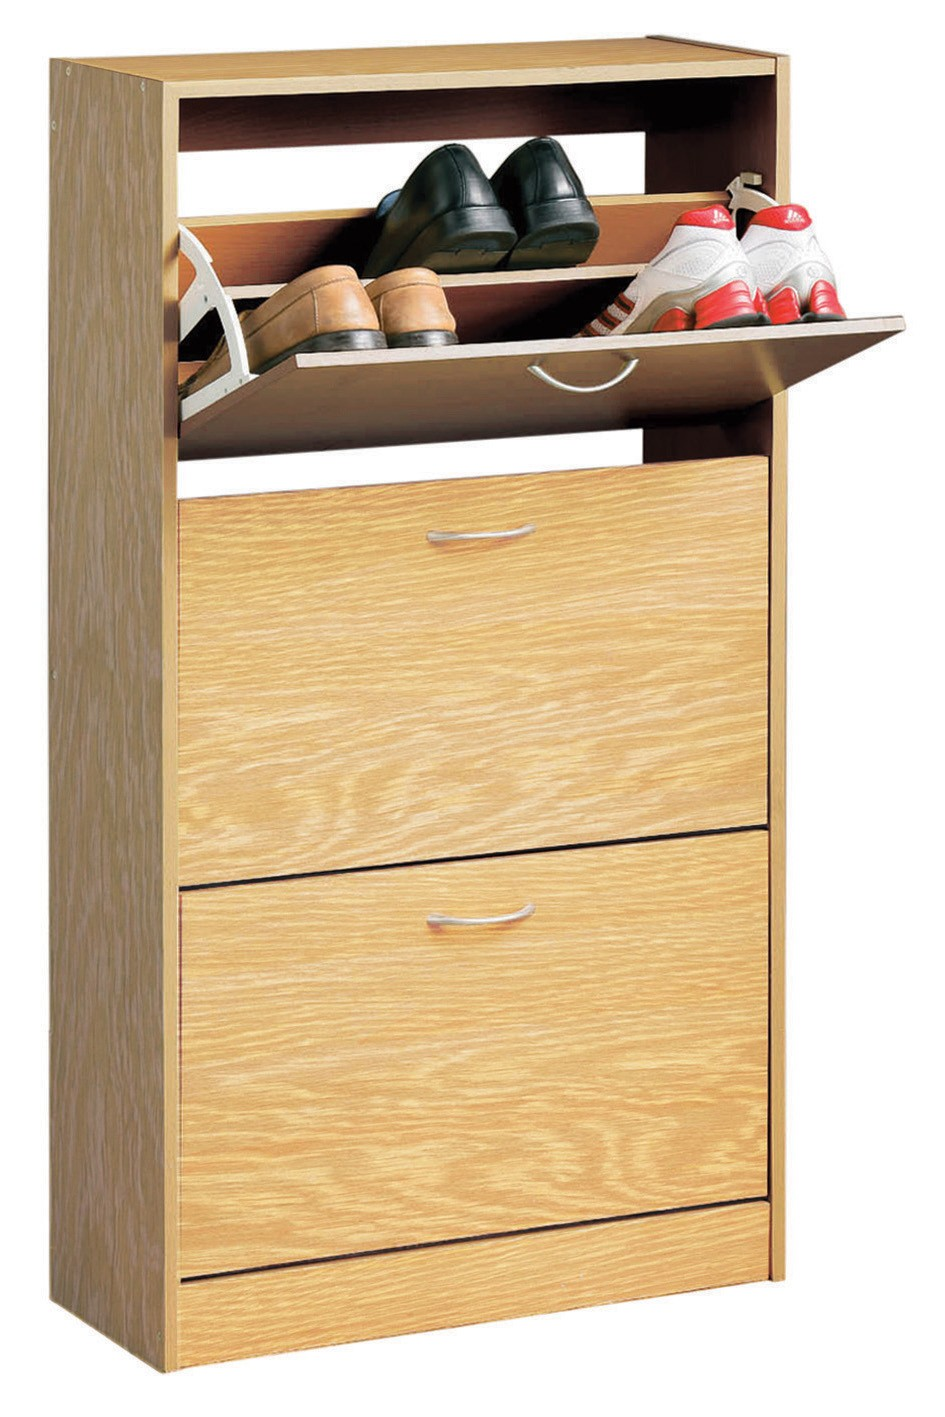 Prime Furnishing 3-Drawer Shoe Cabinet, Oak Veneer